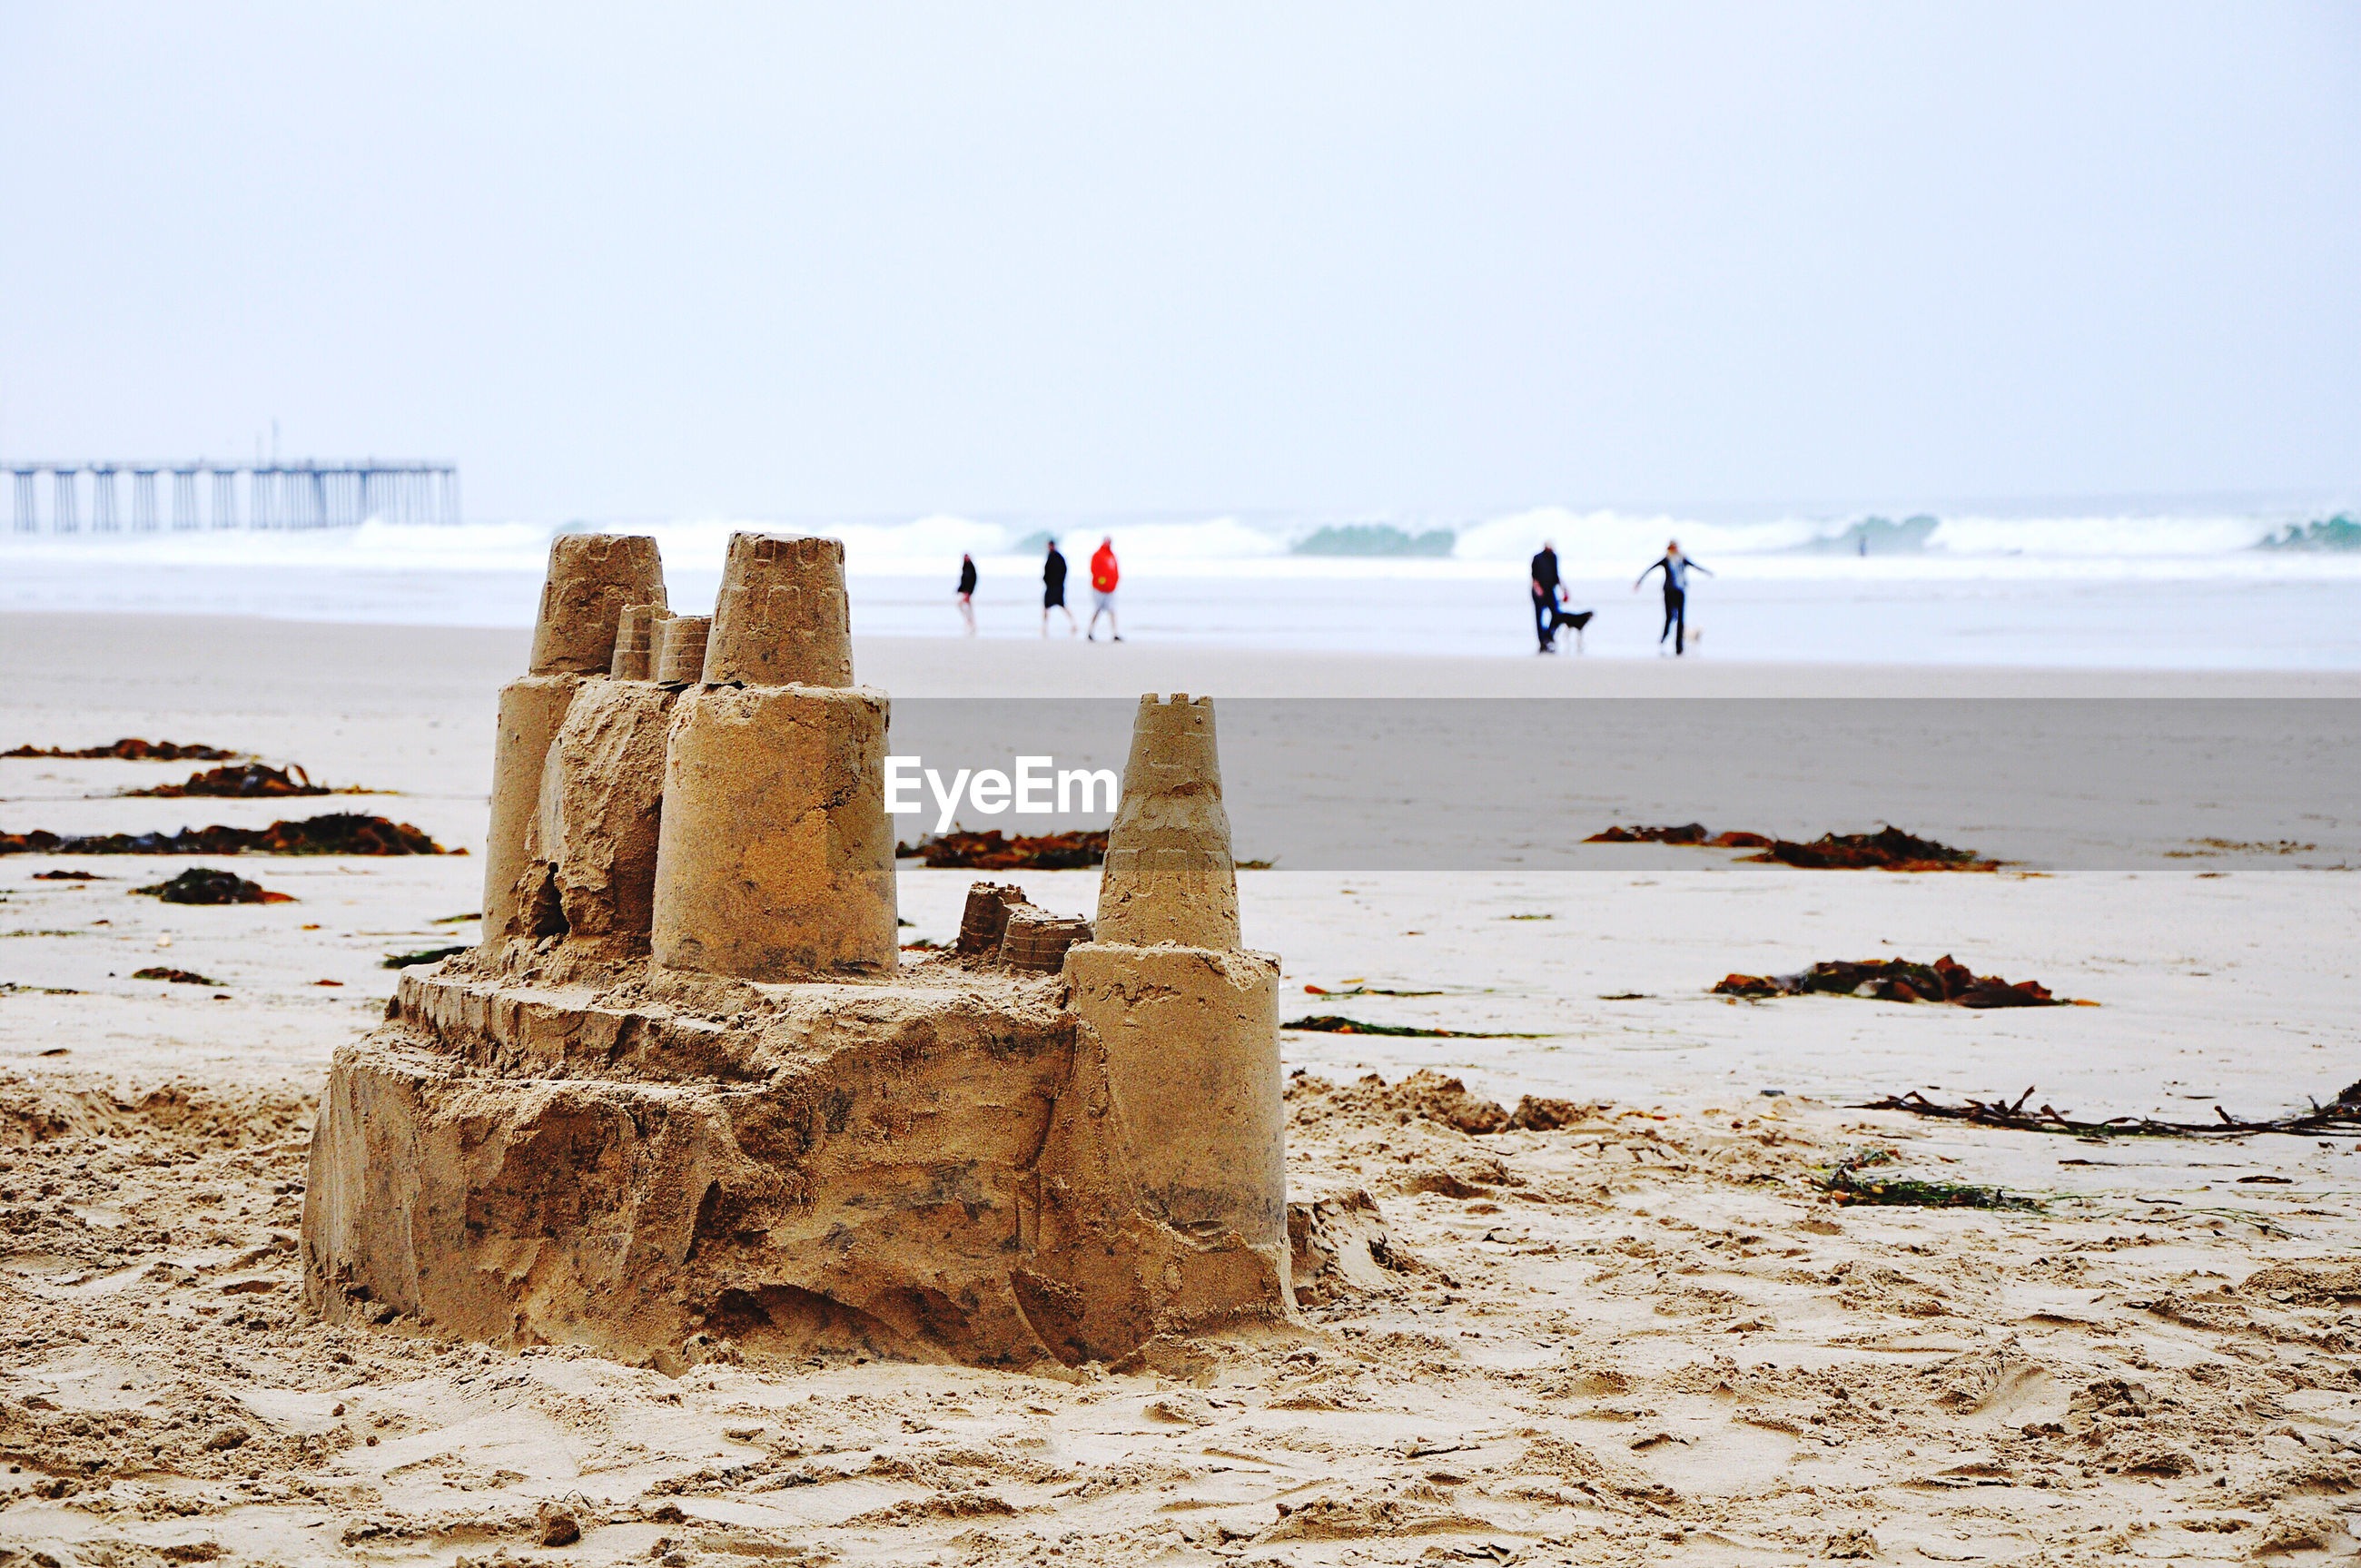 Sandcastle and people at beach against clear sky during winter